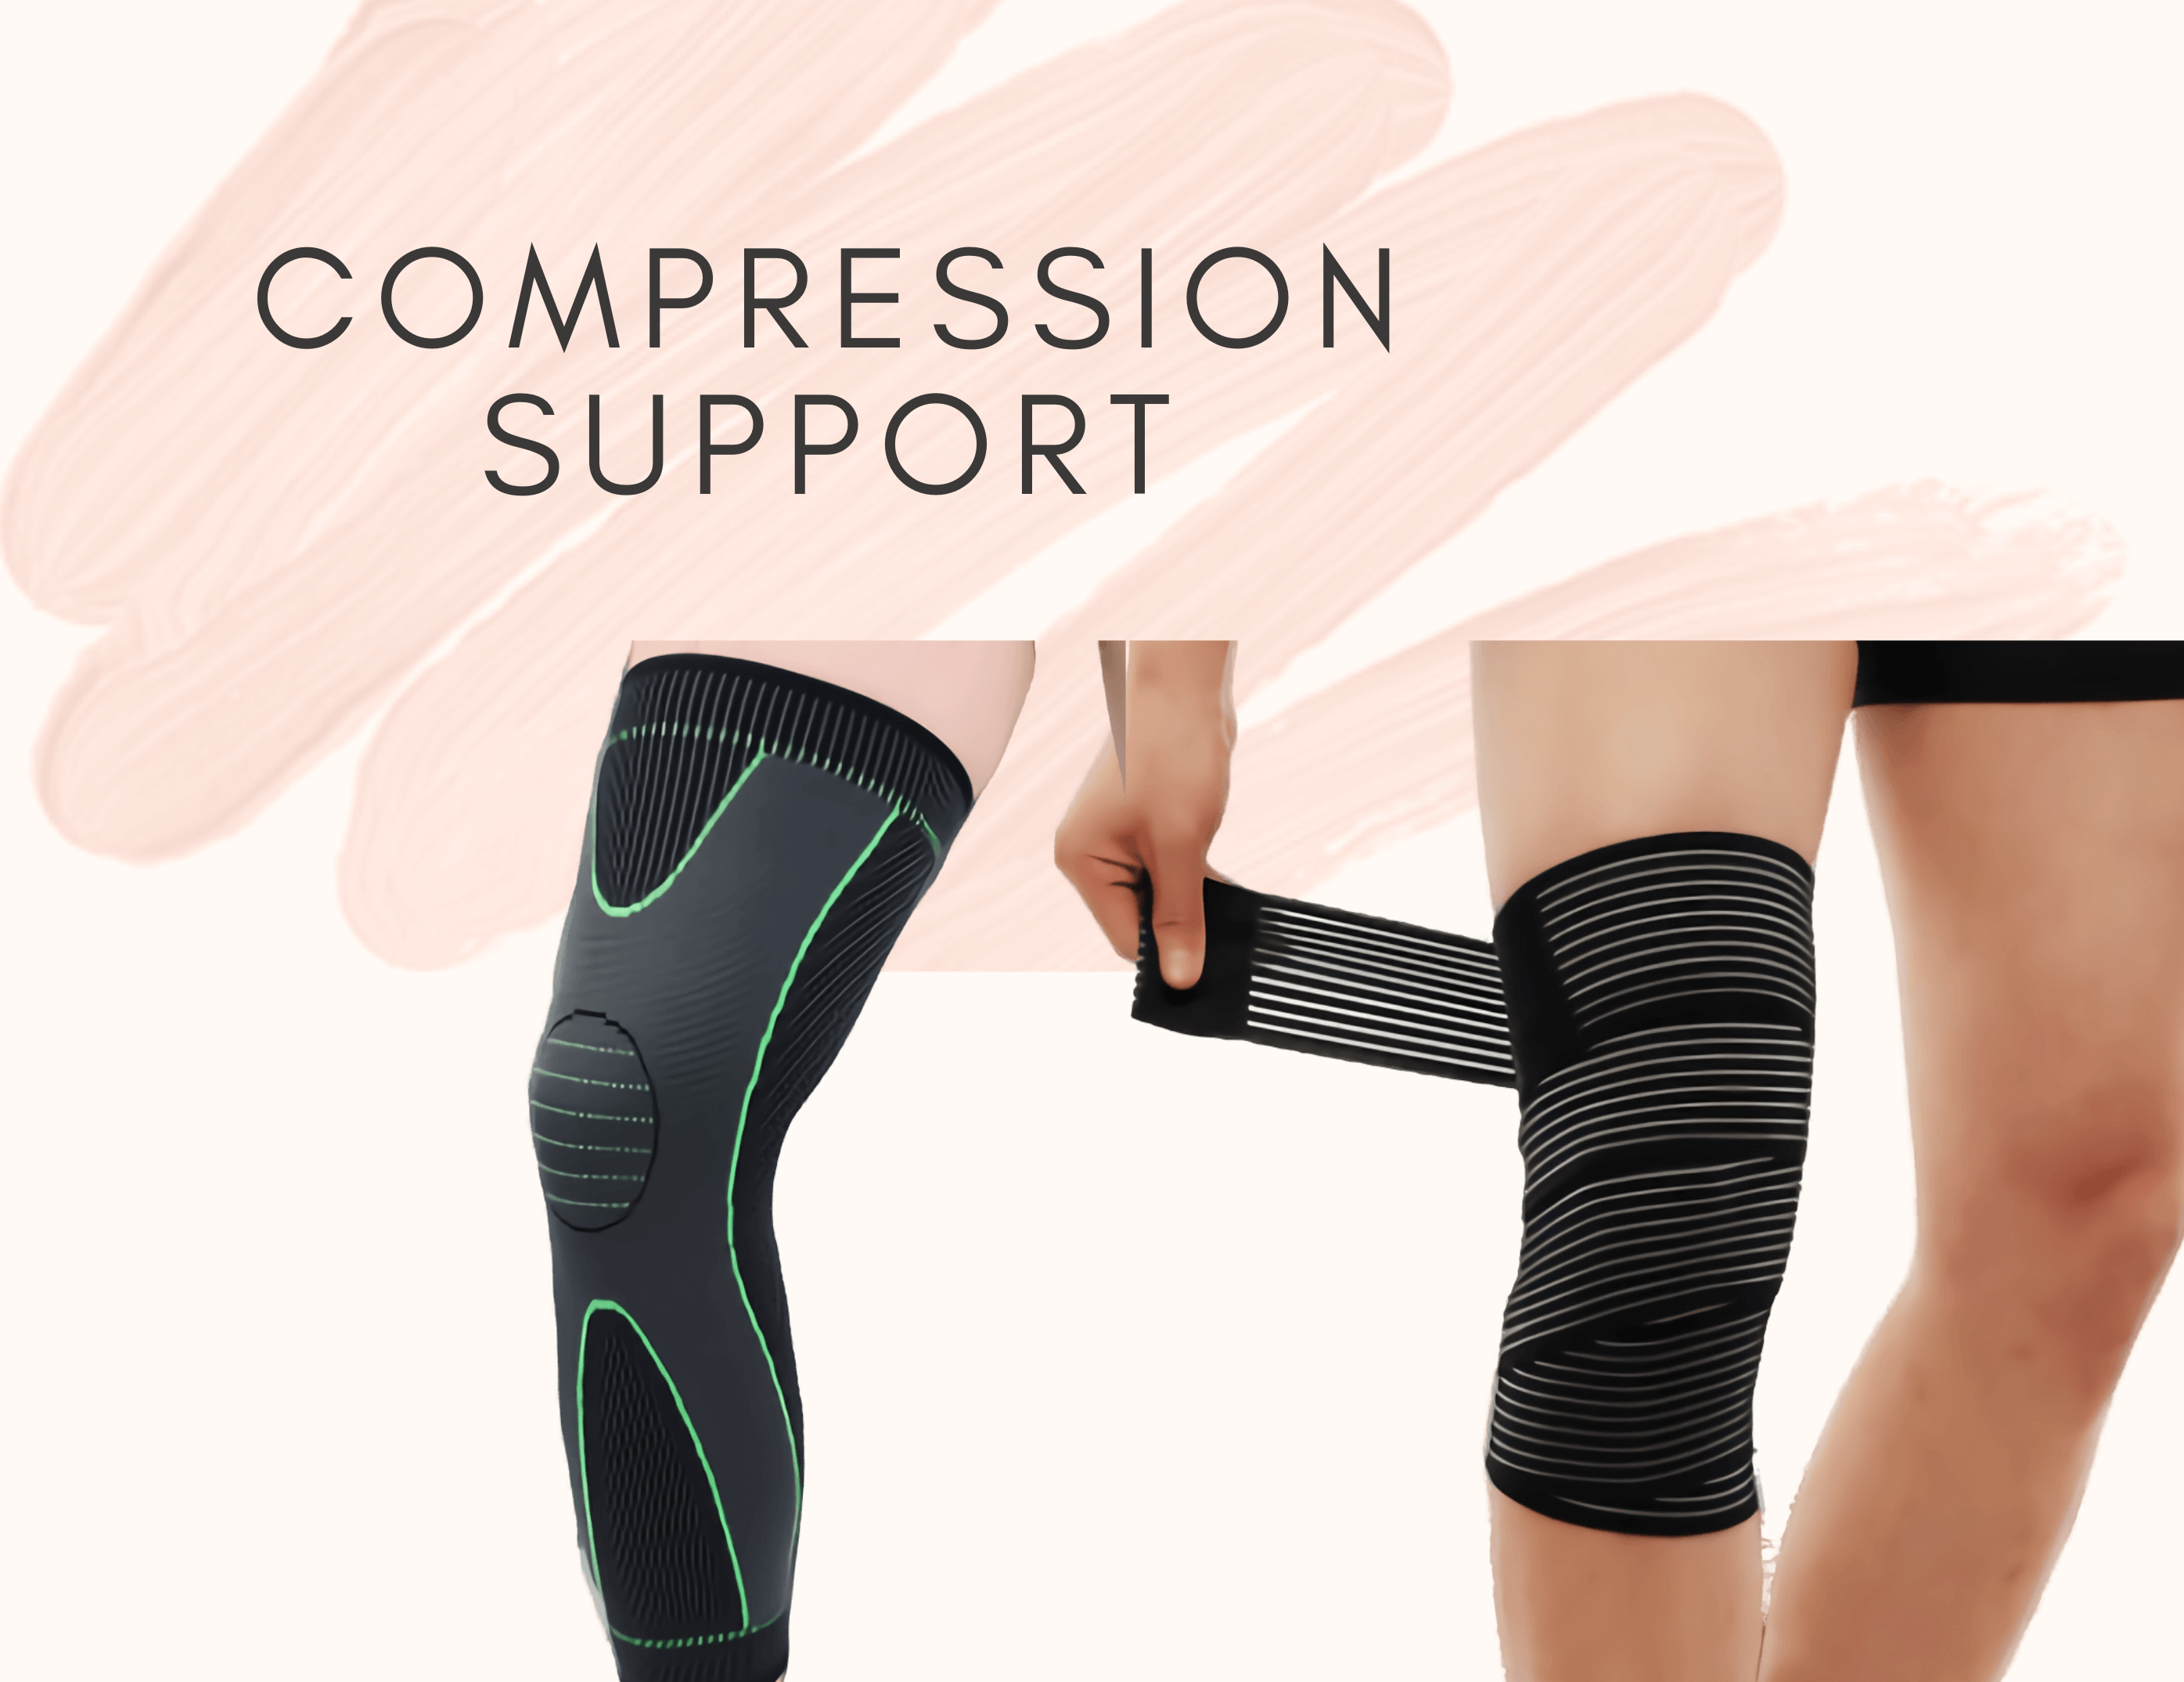 Compression support